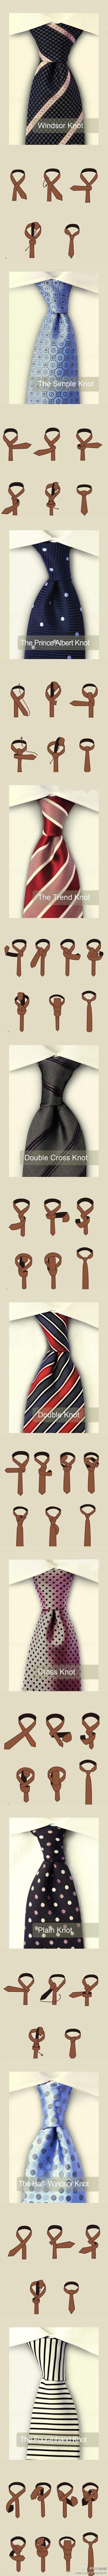 In Case You Didn't know..... Get Your Tie Game Right!!